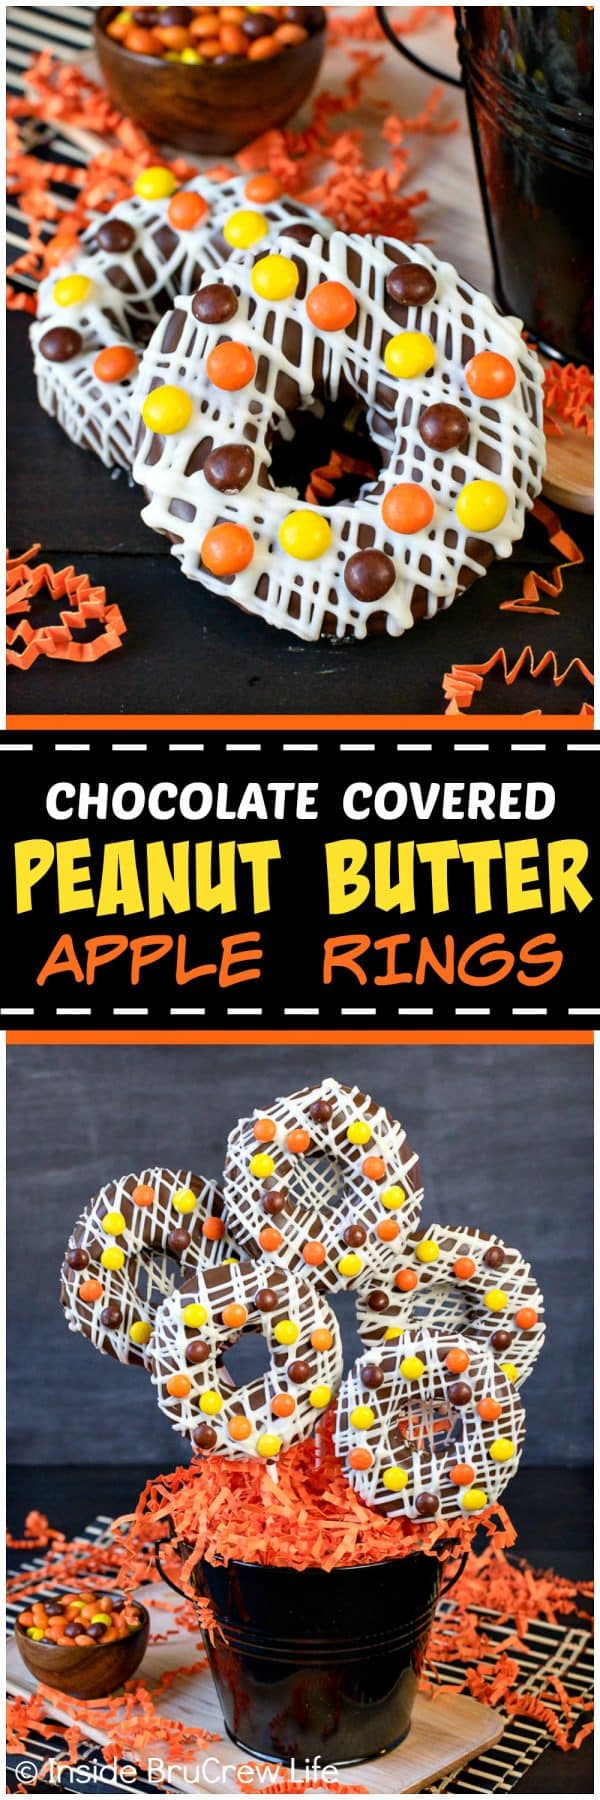 Chocolate Covered Peanut Butter Apple Rings - apple rings with a creamy peanut butter filling and dipped in chocolate with candies are a fun snack for after school or dessert. Make this easy no bake recipe into a bouquet for parties or events. #apple #peanutbutter #reesespieces #crunchpak #sponsored #mothersday #nobake #applerings #chocolate